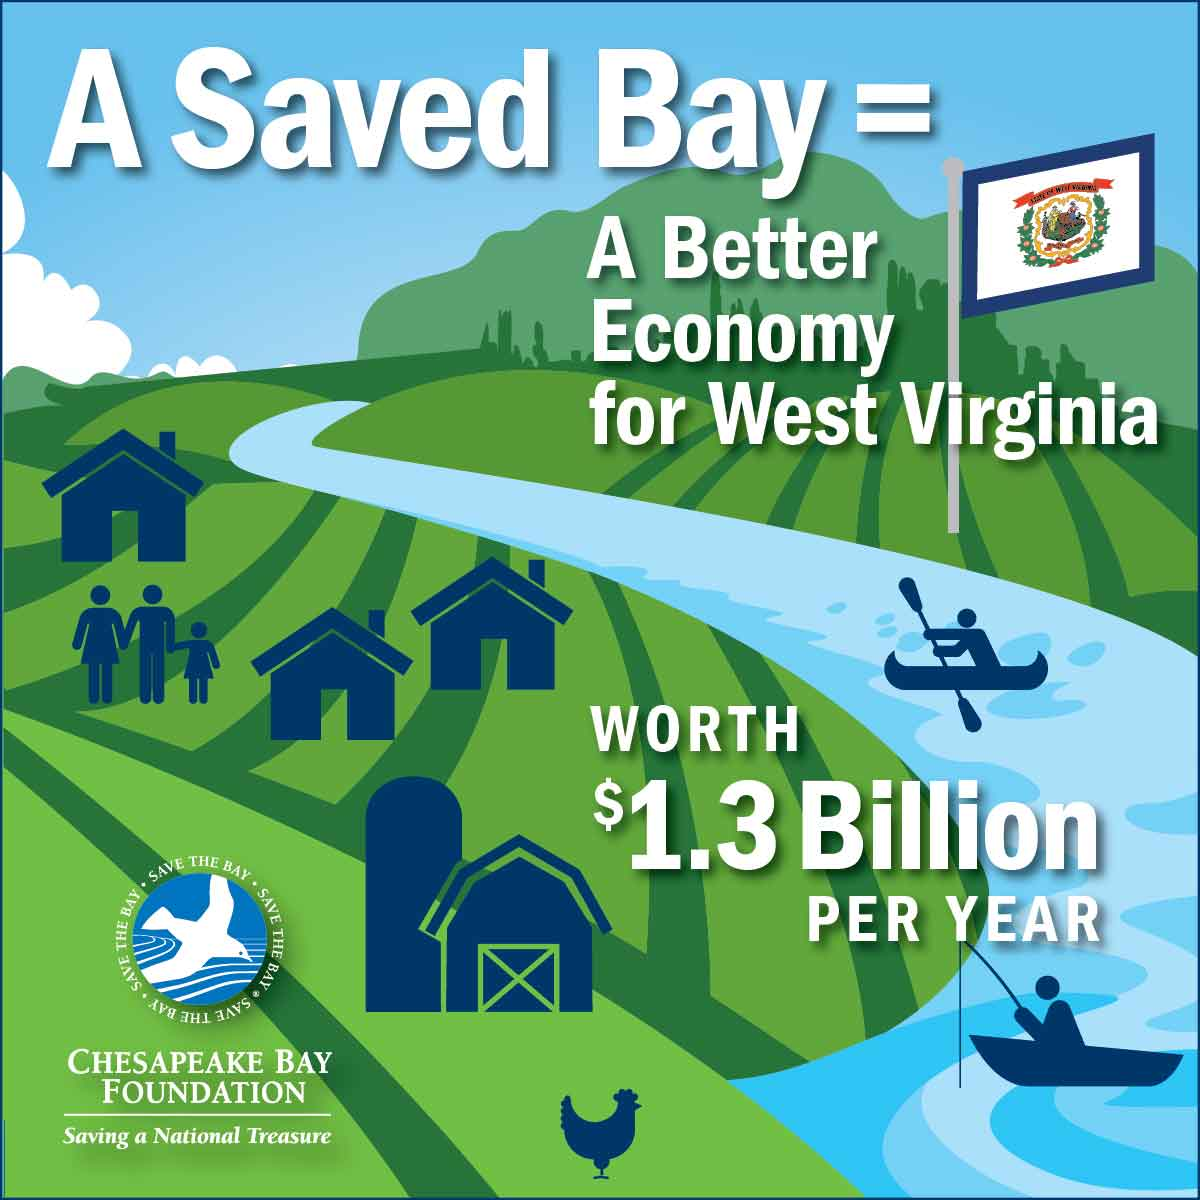 A Saved Bay = A Better Economy for West Virginia worth $1.3 Billion per year